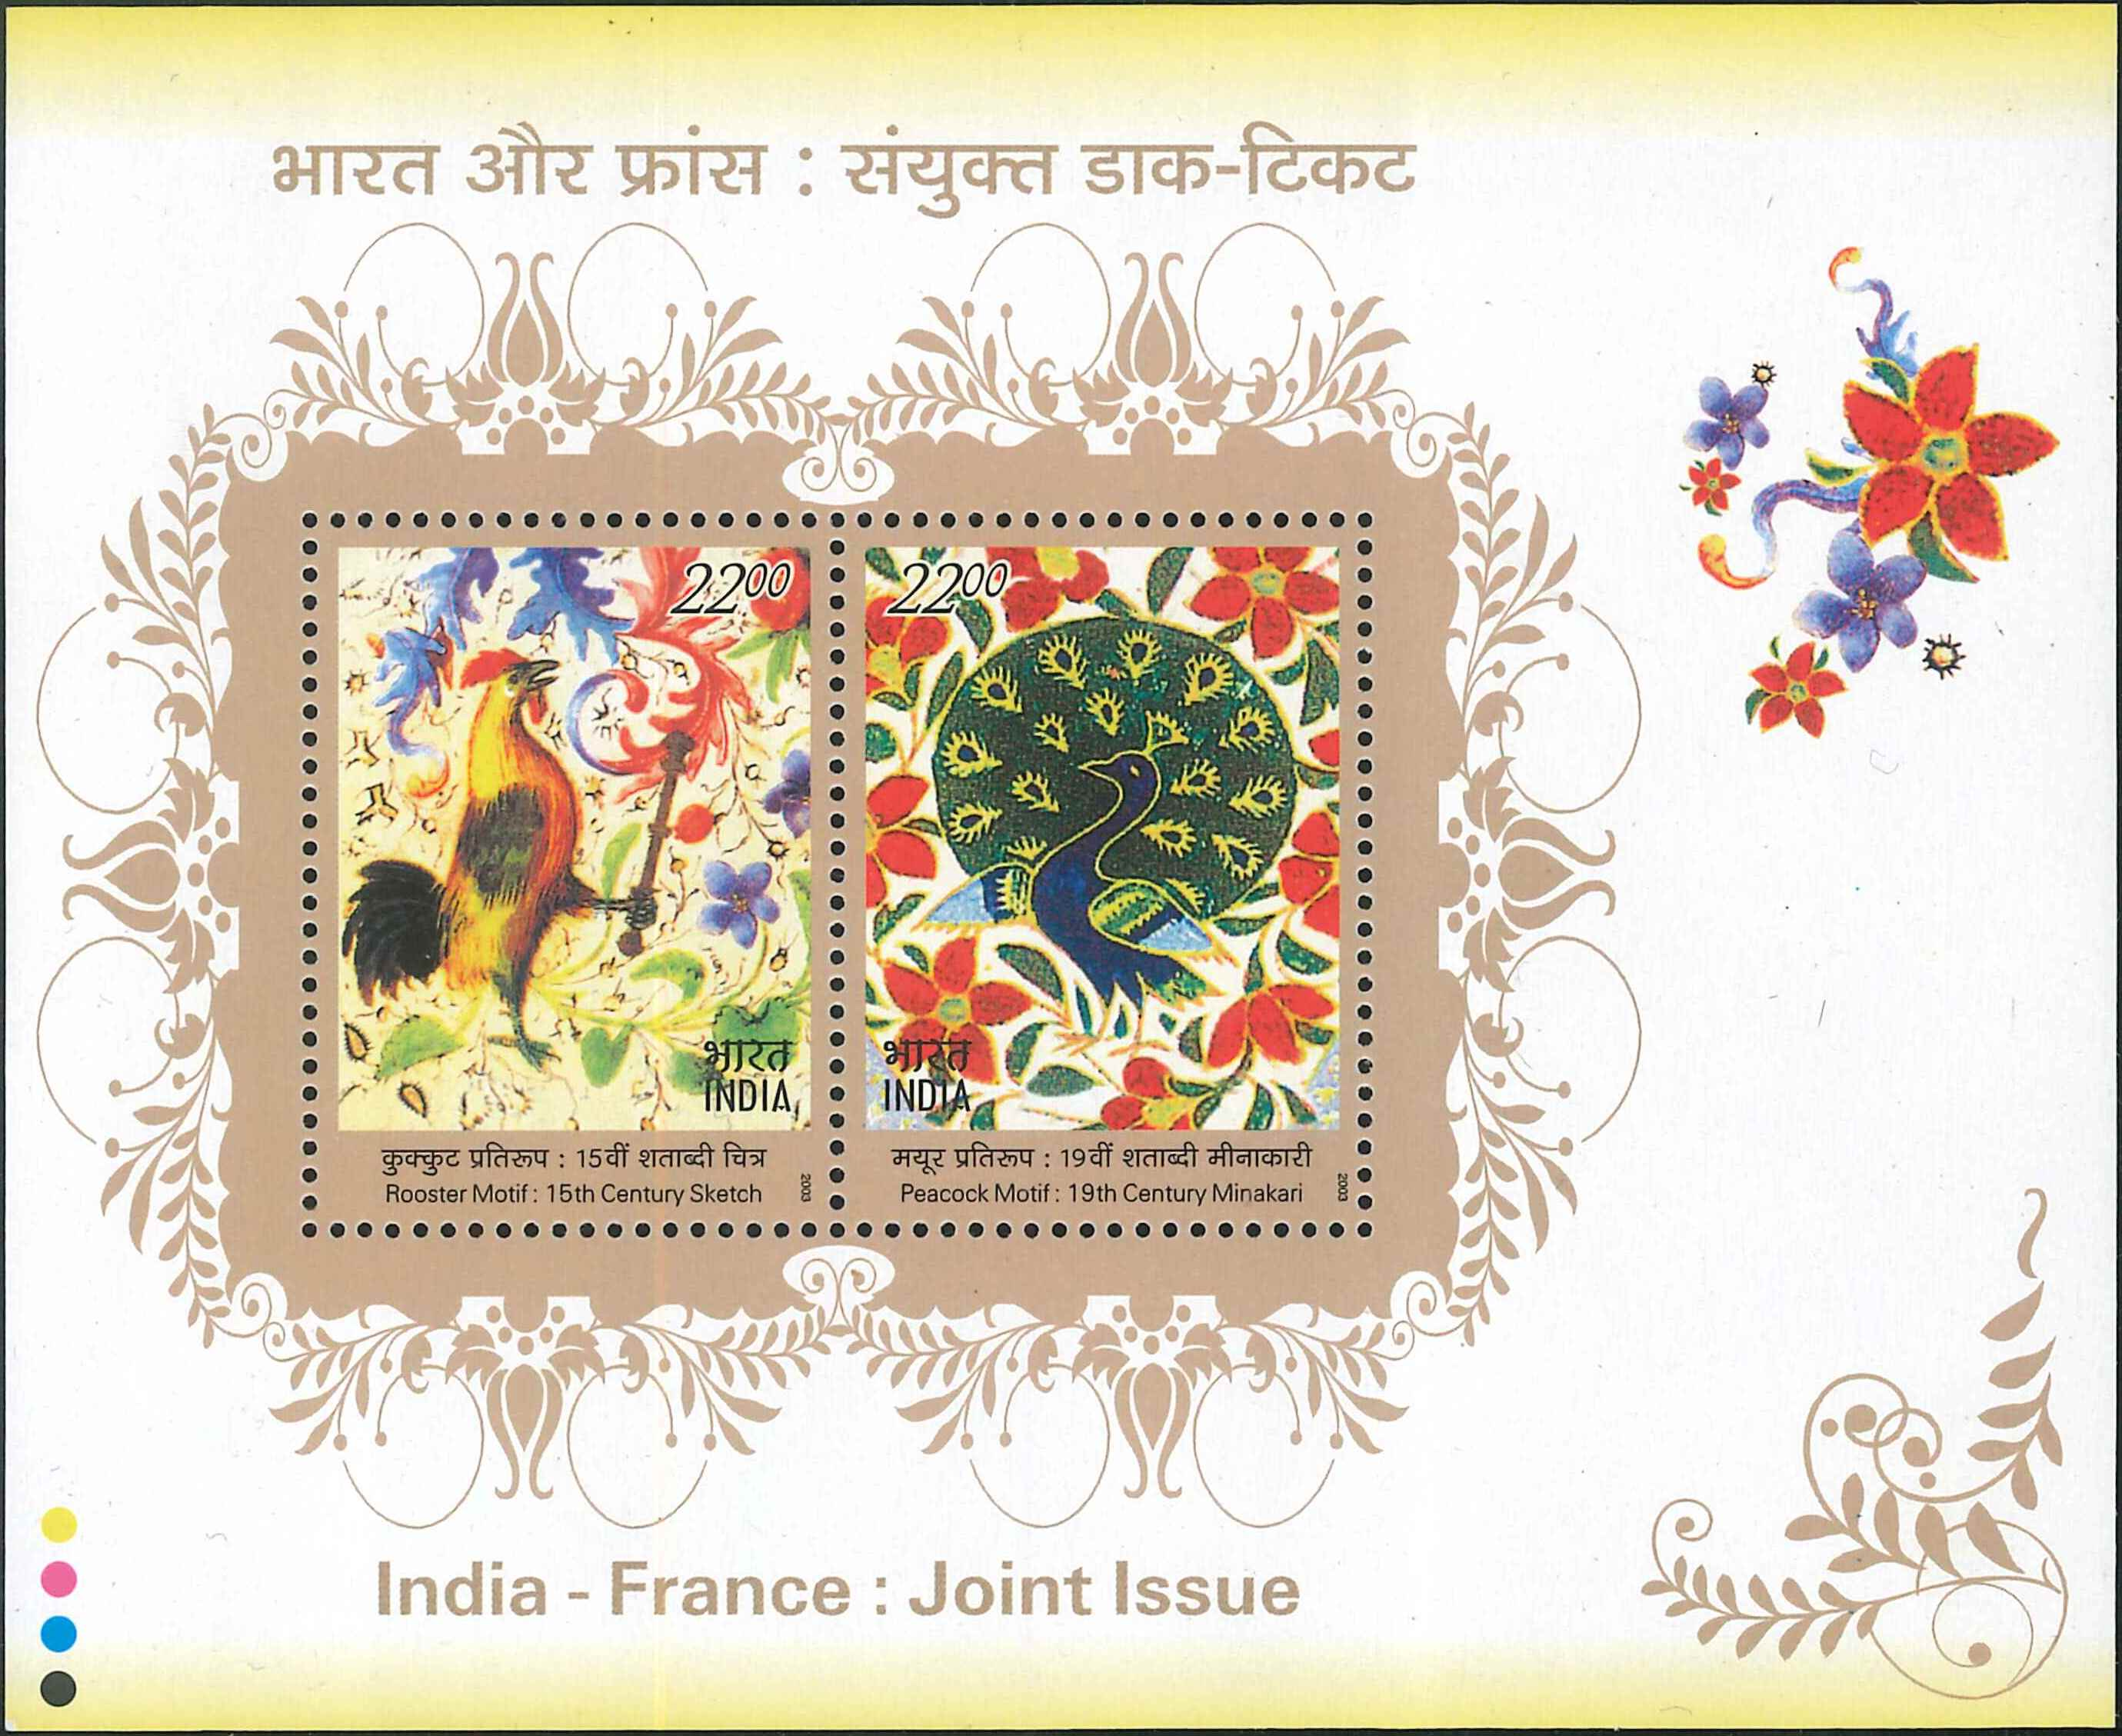 Rooster (France) and Peacock (India) Motif